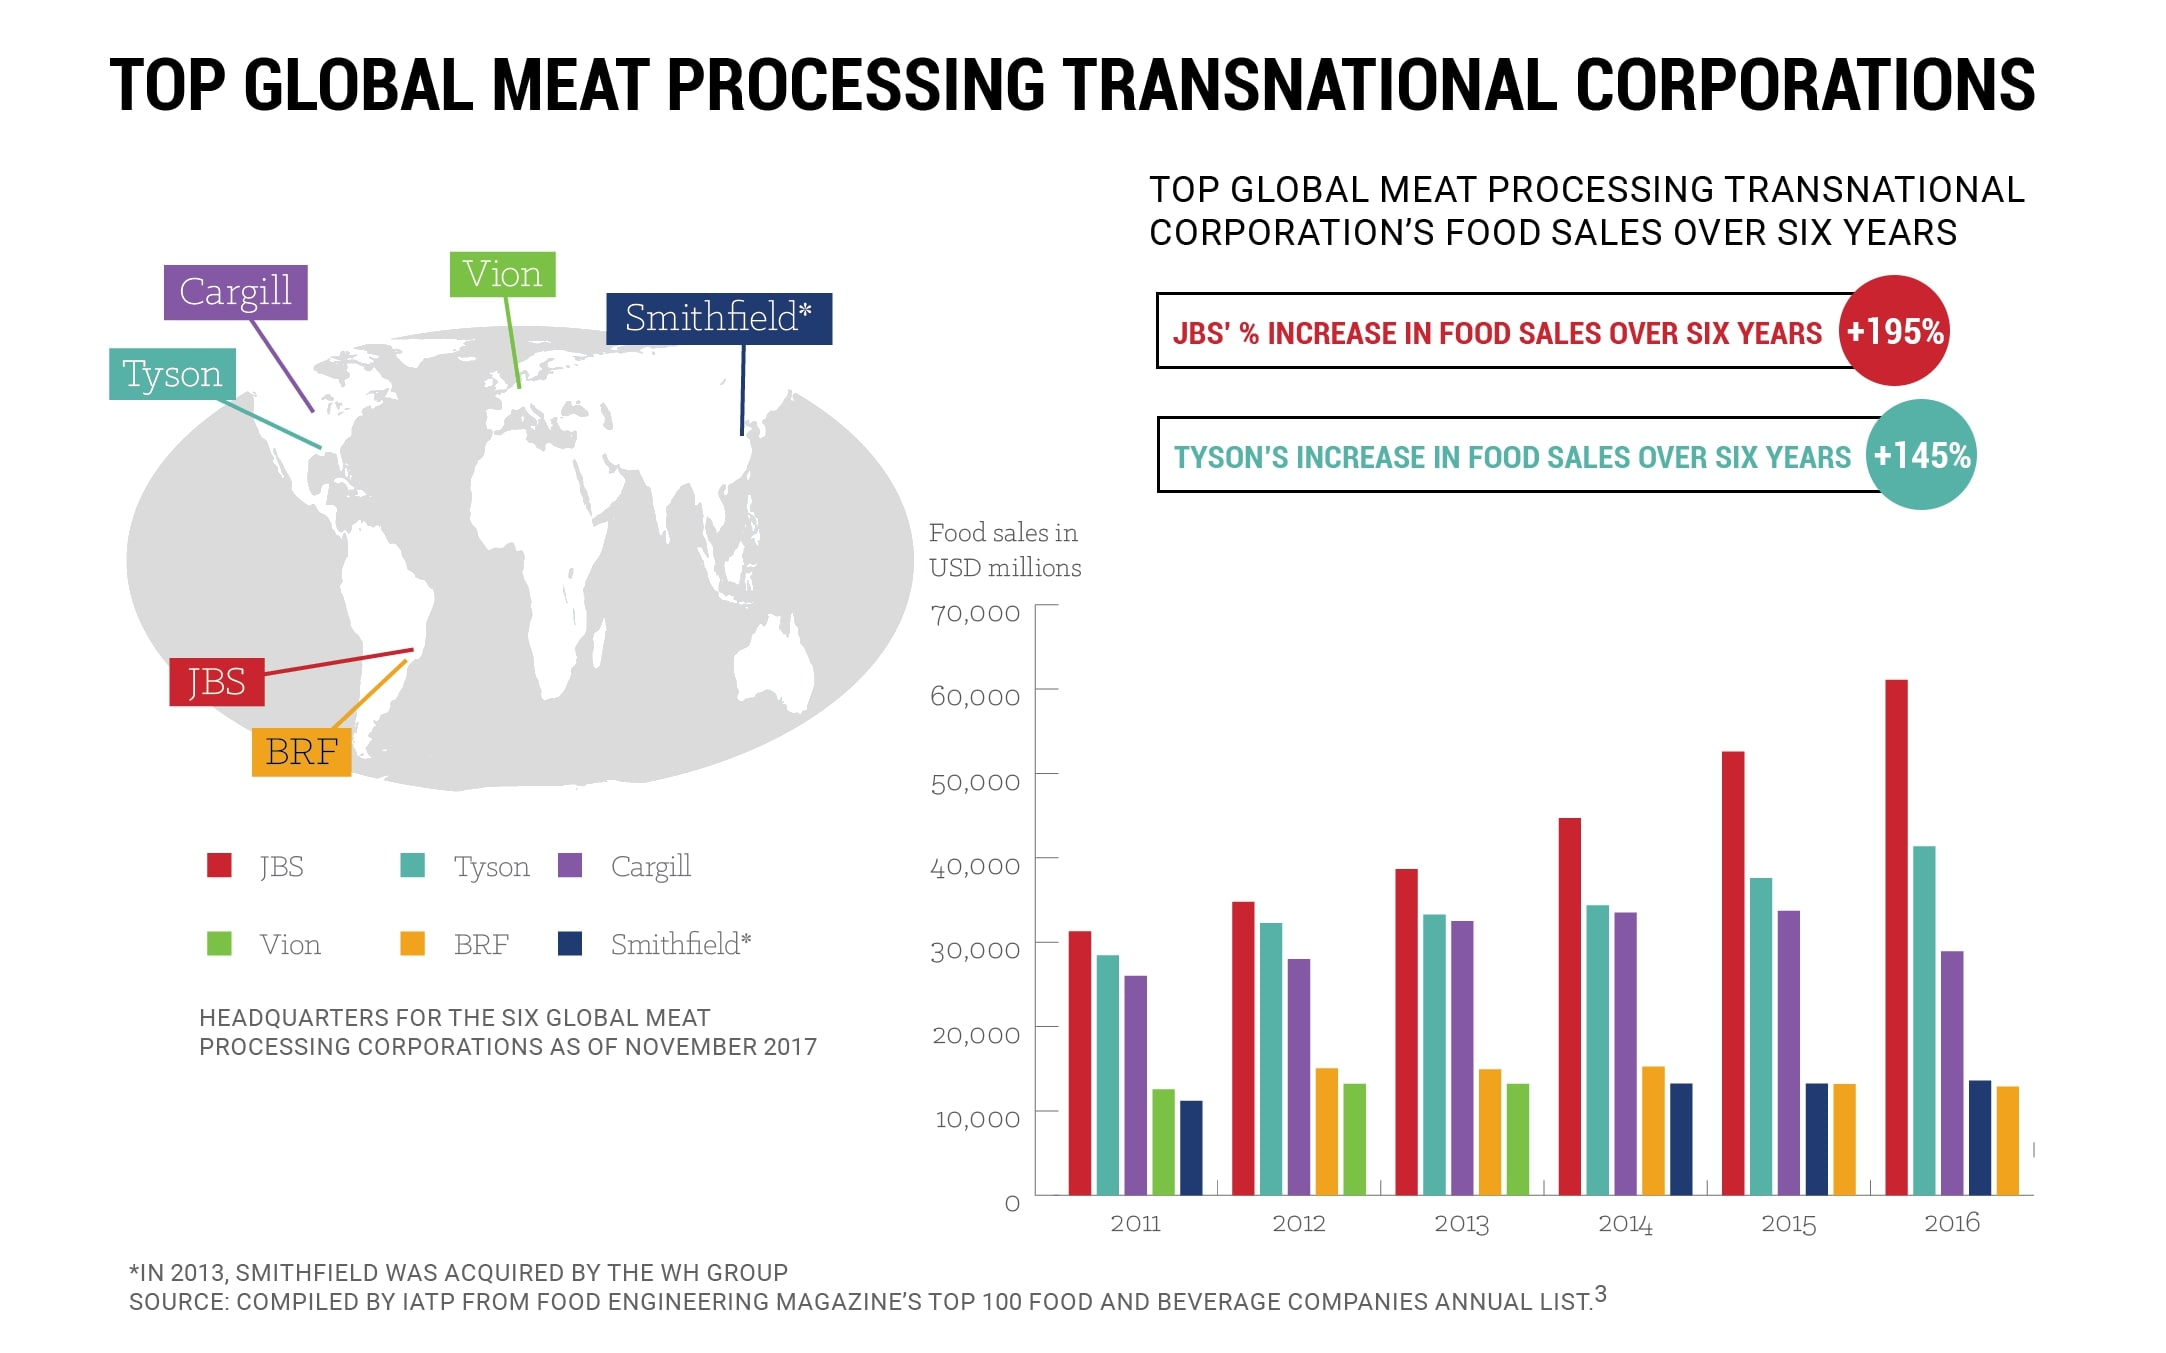 Leading Meat Producers